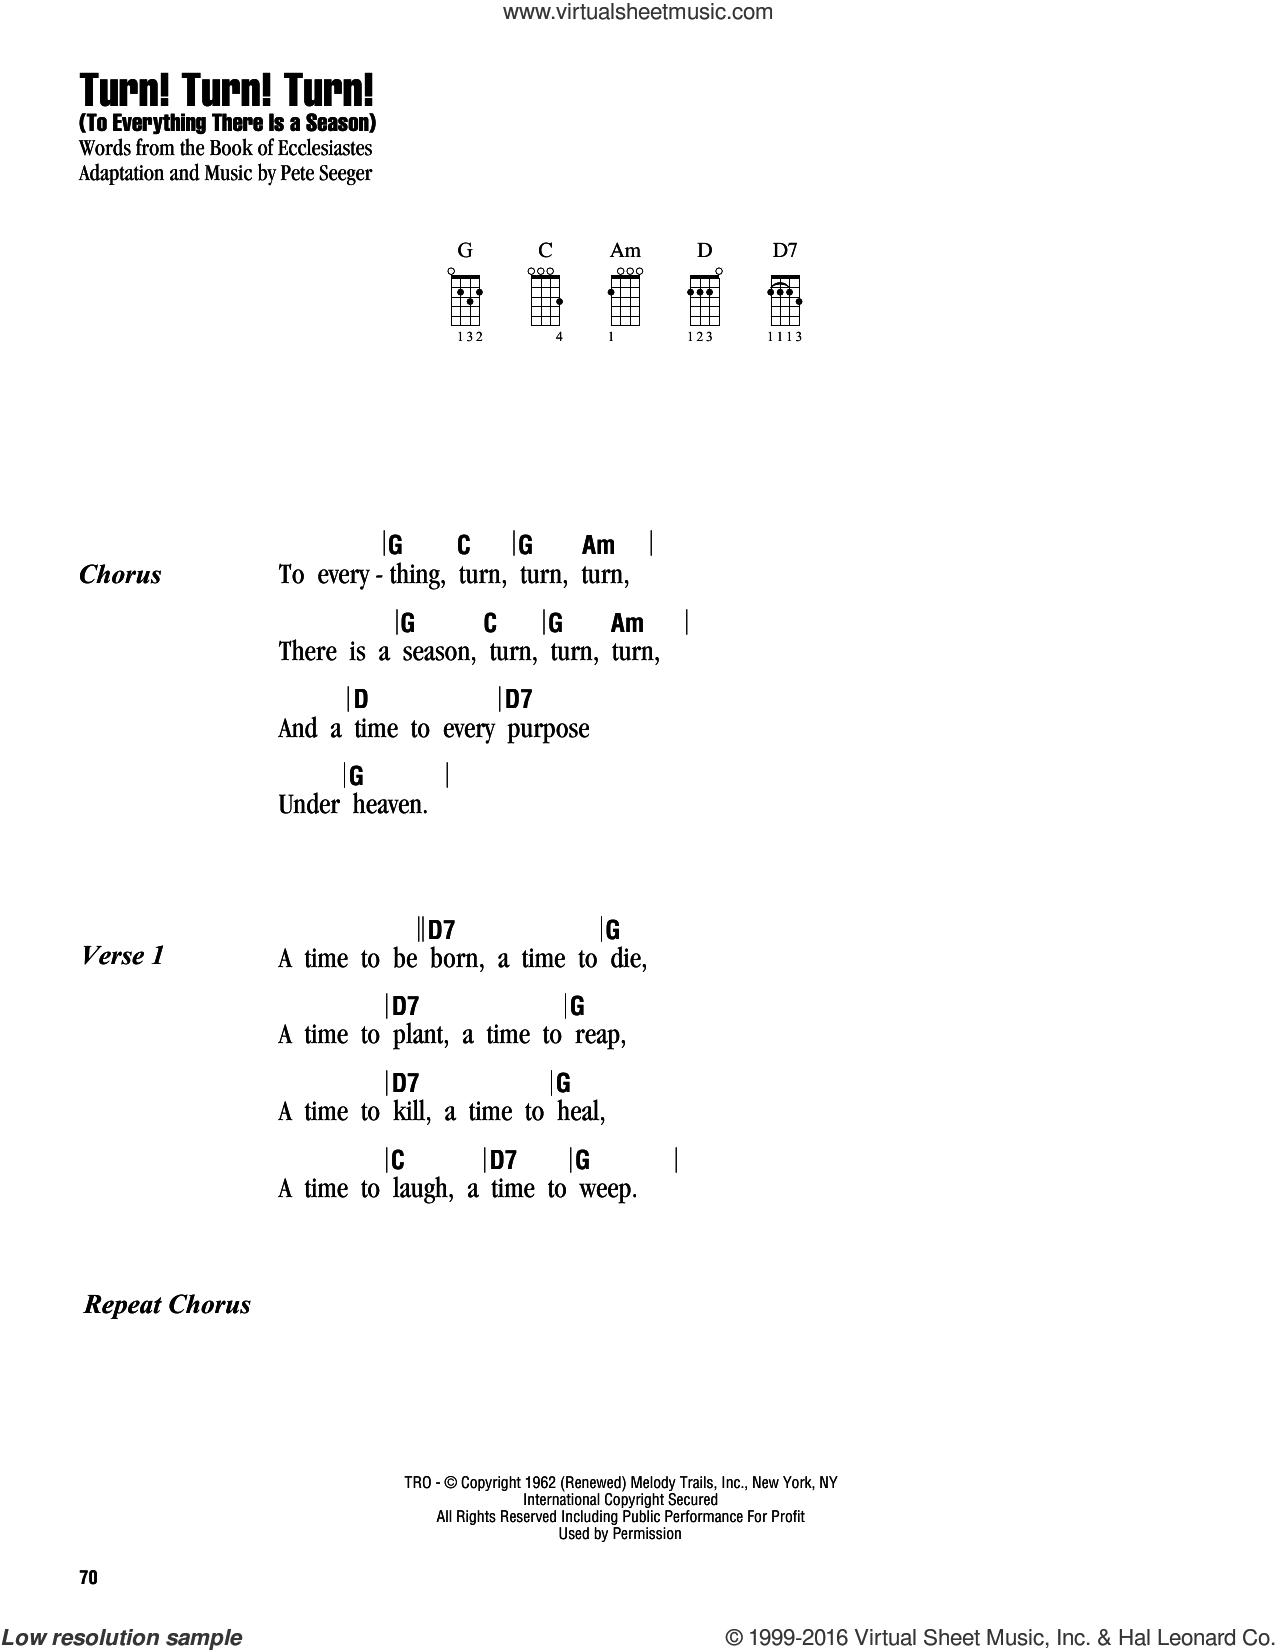 Turn! Turn! Turn! (To Everything There Is A Season) sheet music for ukulele (chords) by The Byrds, Book of Ecclesiastes and Pete Seeger, intermediate skill level